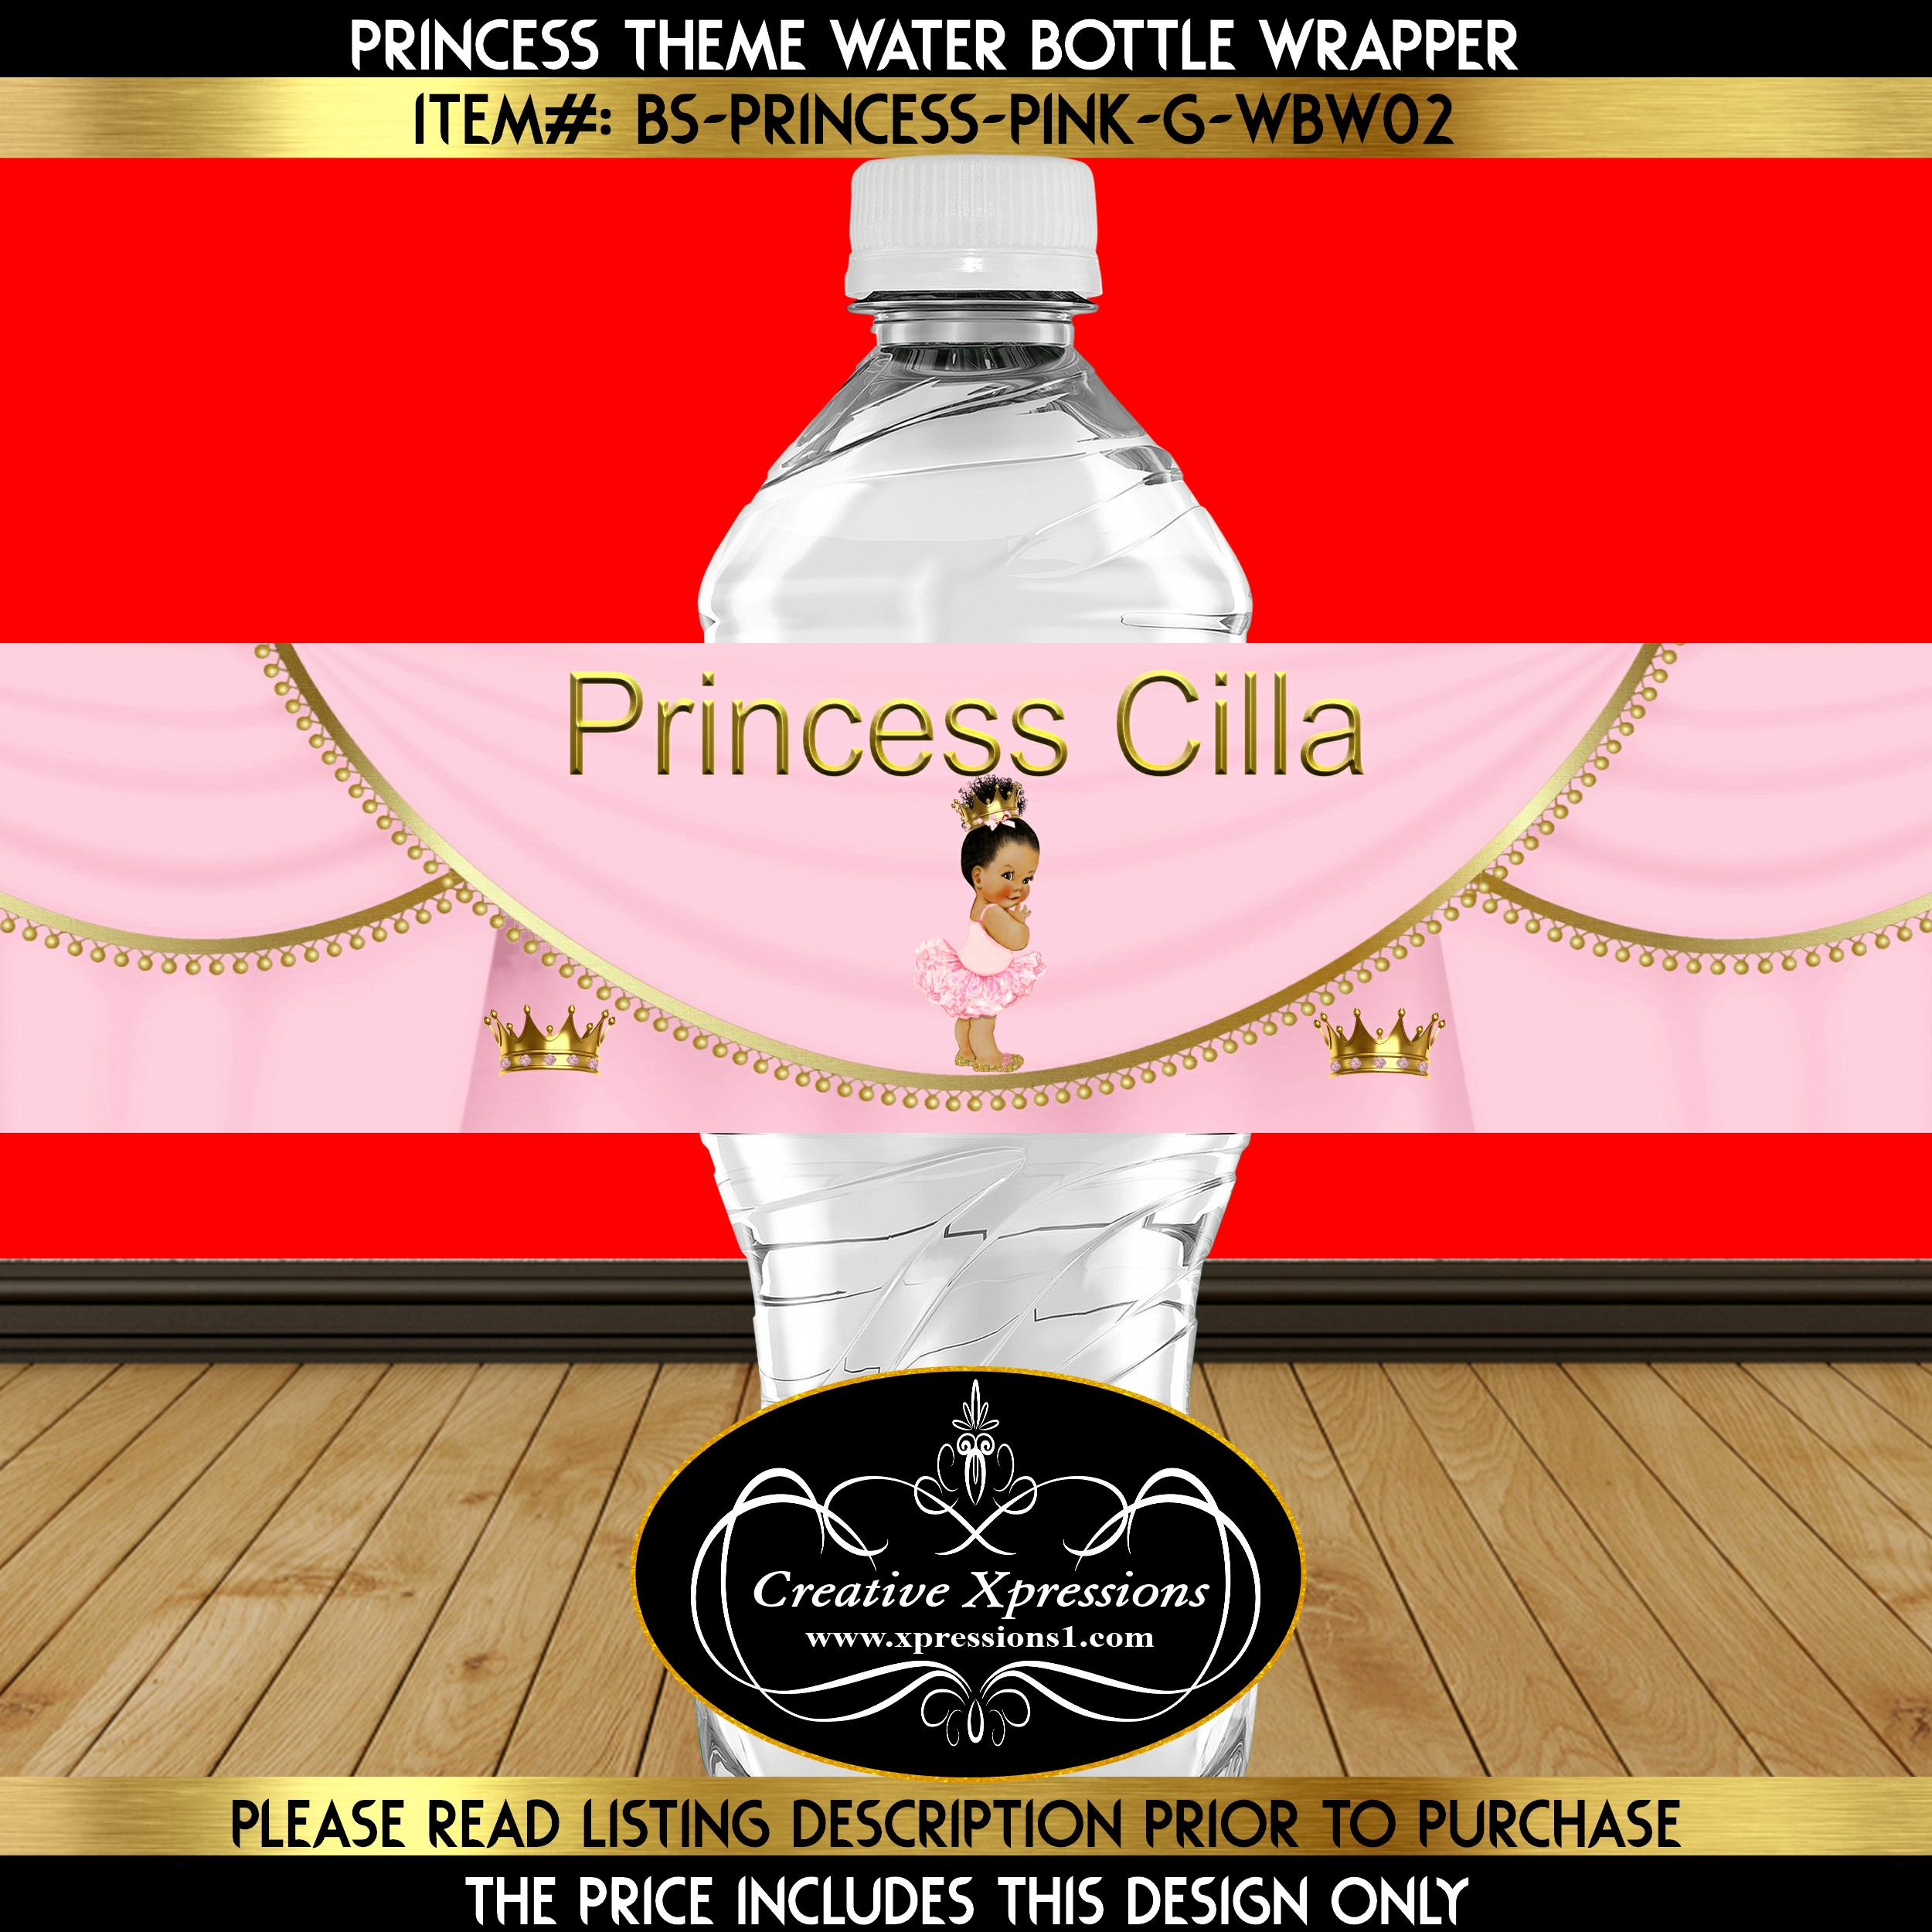 Ballerina Princess Water Bottle Wrapper